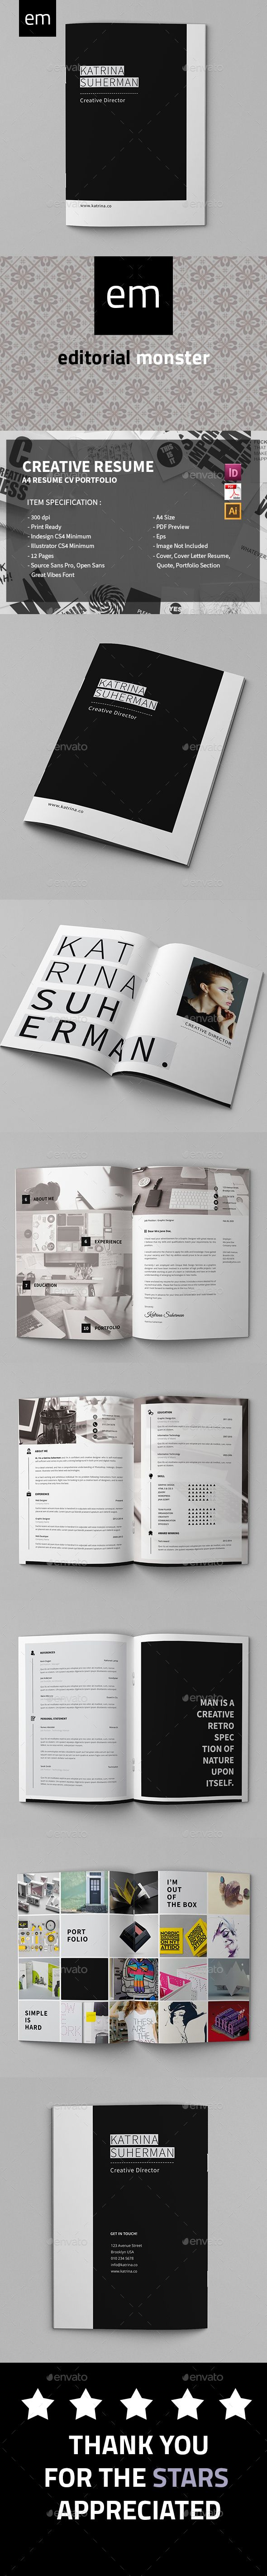 Creative Director Resume Template InDesign INDD, Vector AI Illustrator #design Download: http://graphicriver.net/item/creative-director-resume/14366261?ref=ksioks